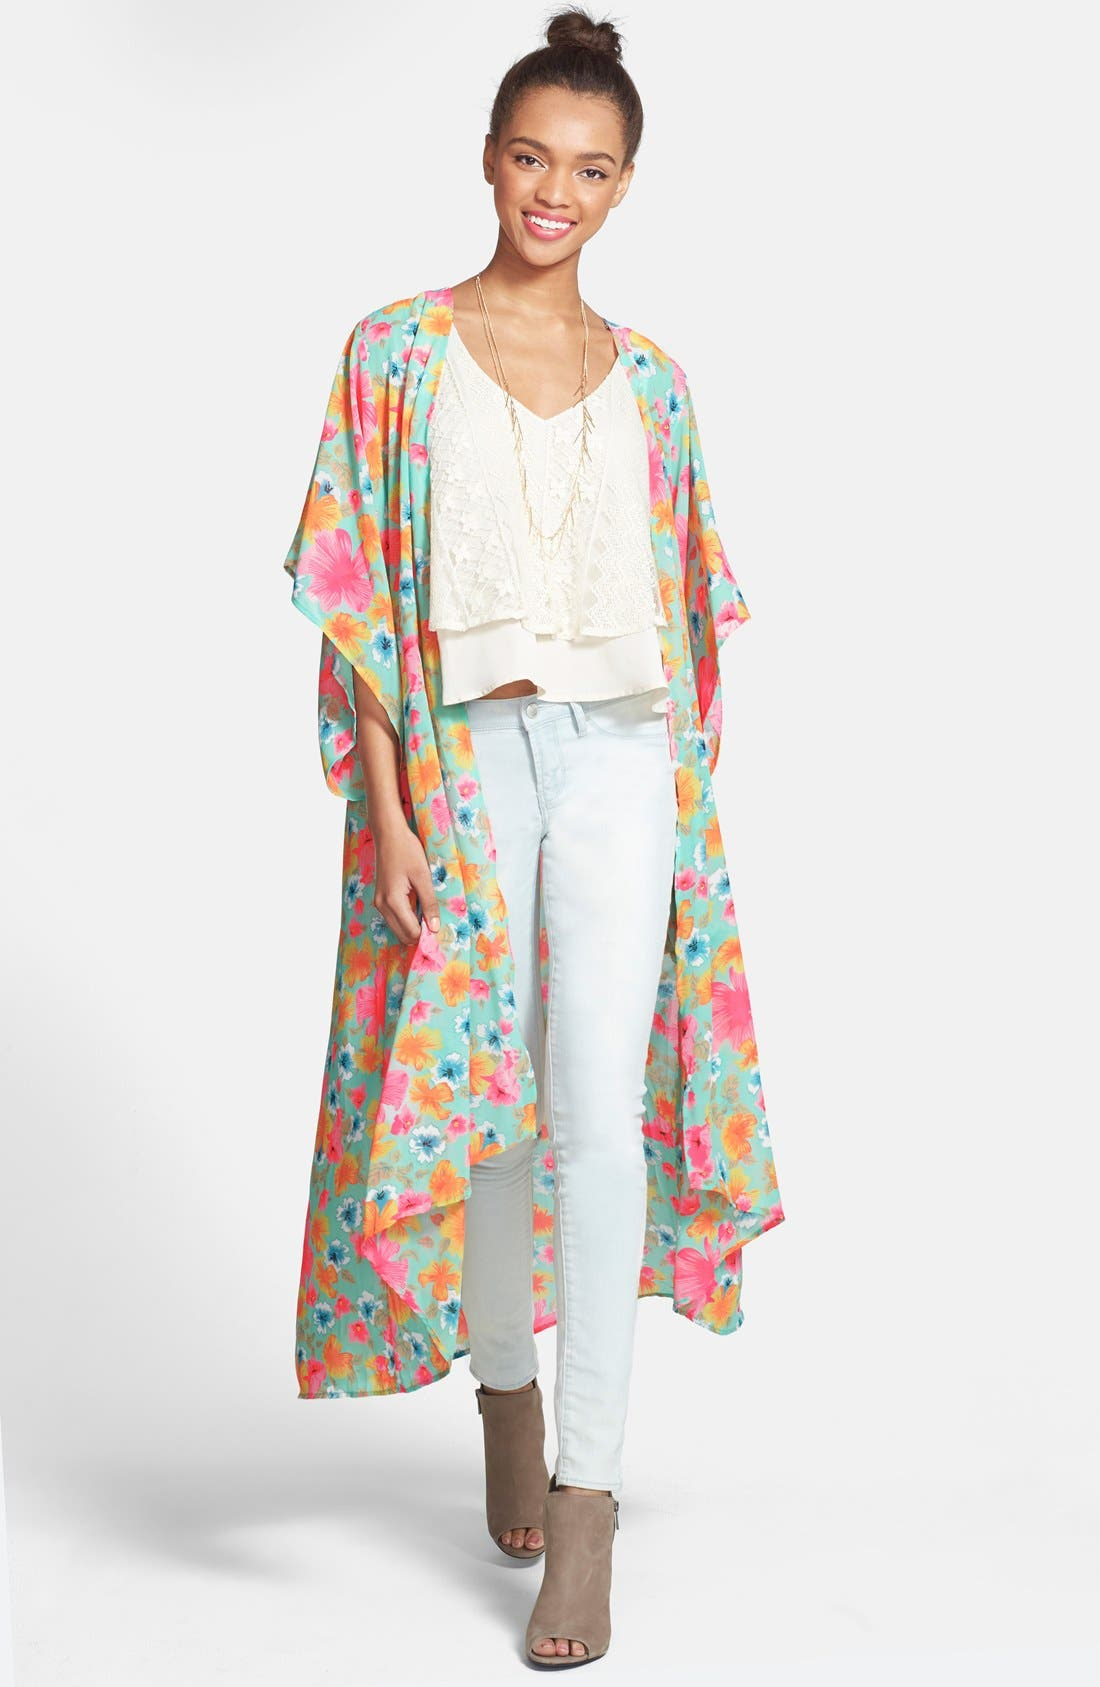 Alternate Image 1 Selected - Band of Gypsies Floral Print Duster Kimono Jacket (Juniors)